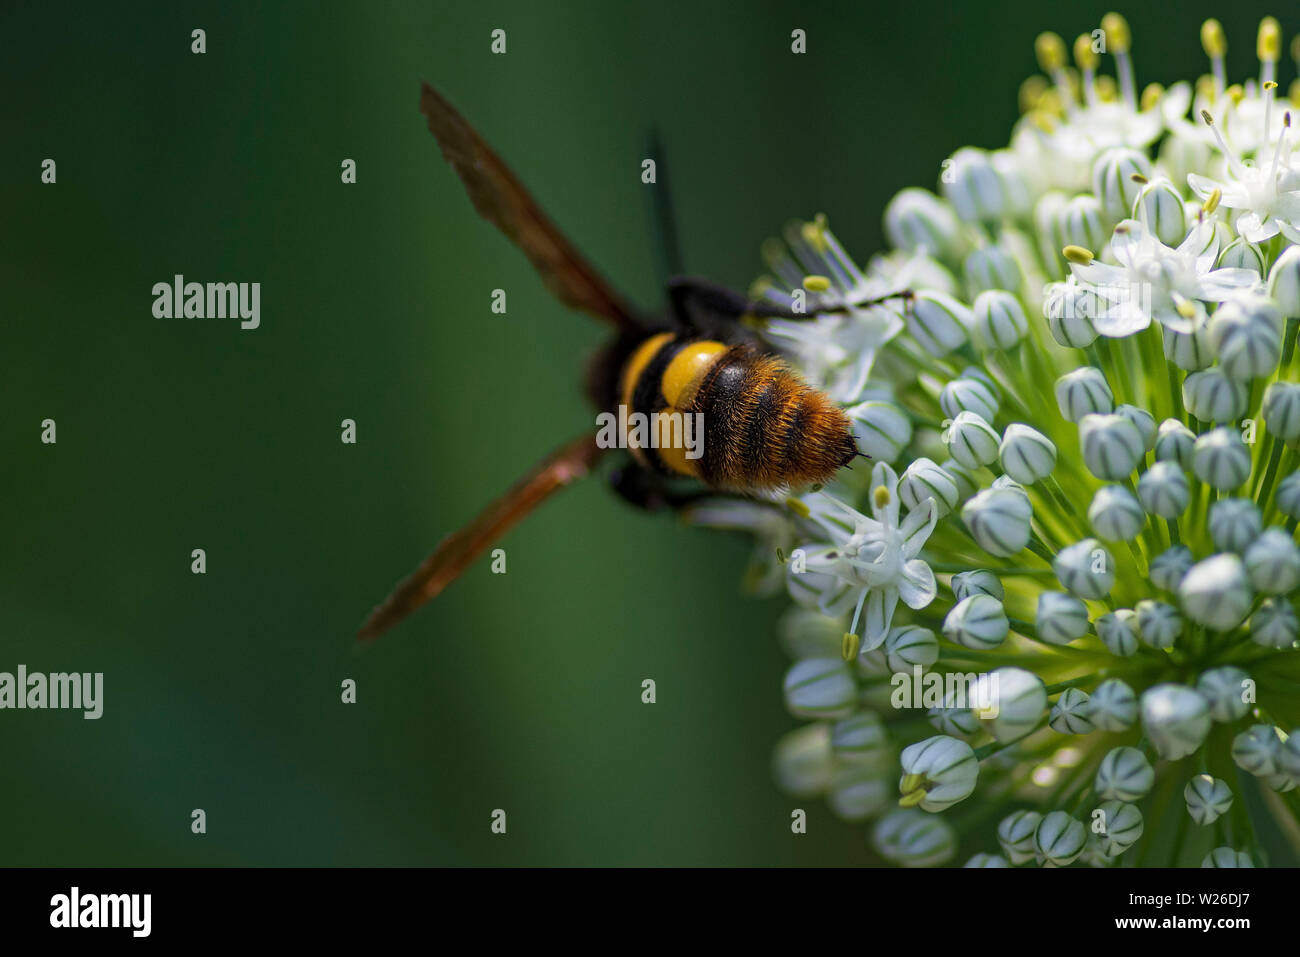 Scola lat. Megascolia maculata lat. Scolia maculata is a species of large wasps from the family of scaly .Megascolia maculata. The mammoth wasp. Scola - Stock Image